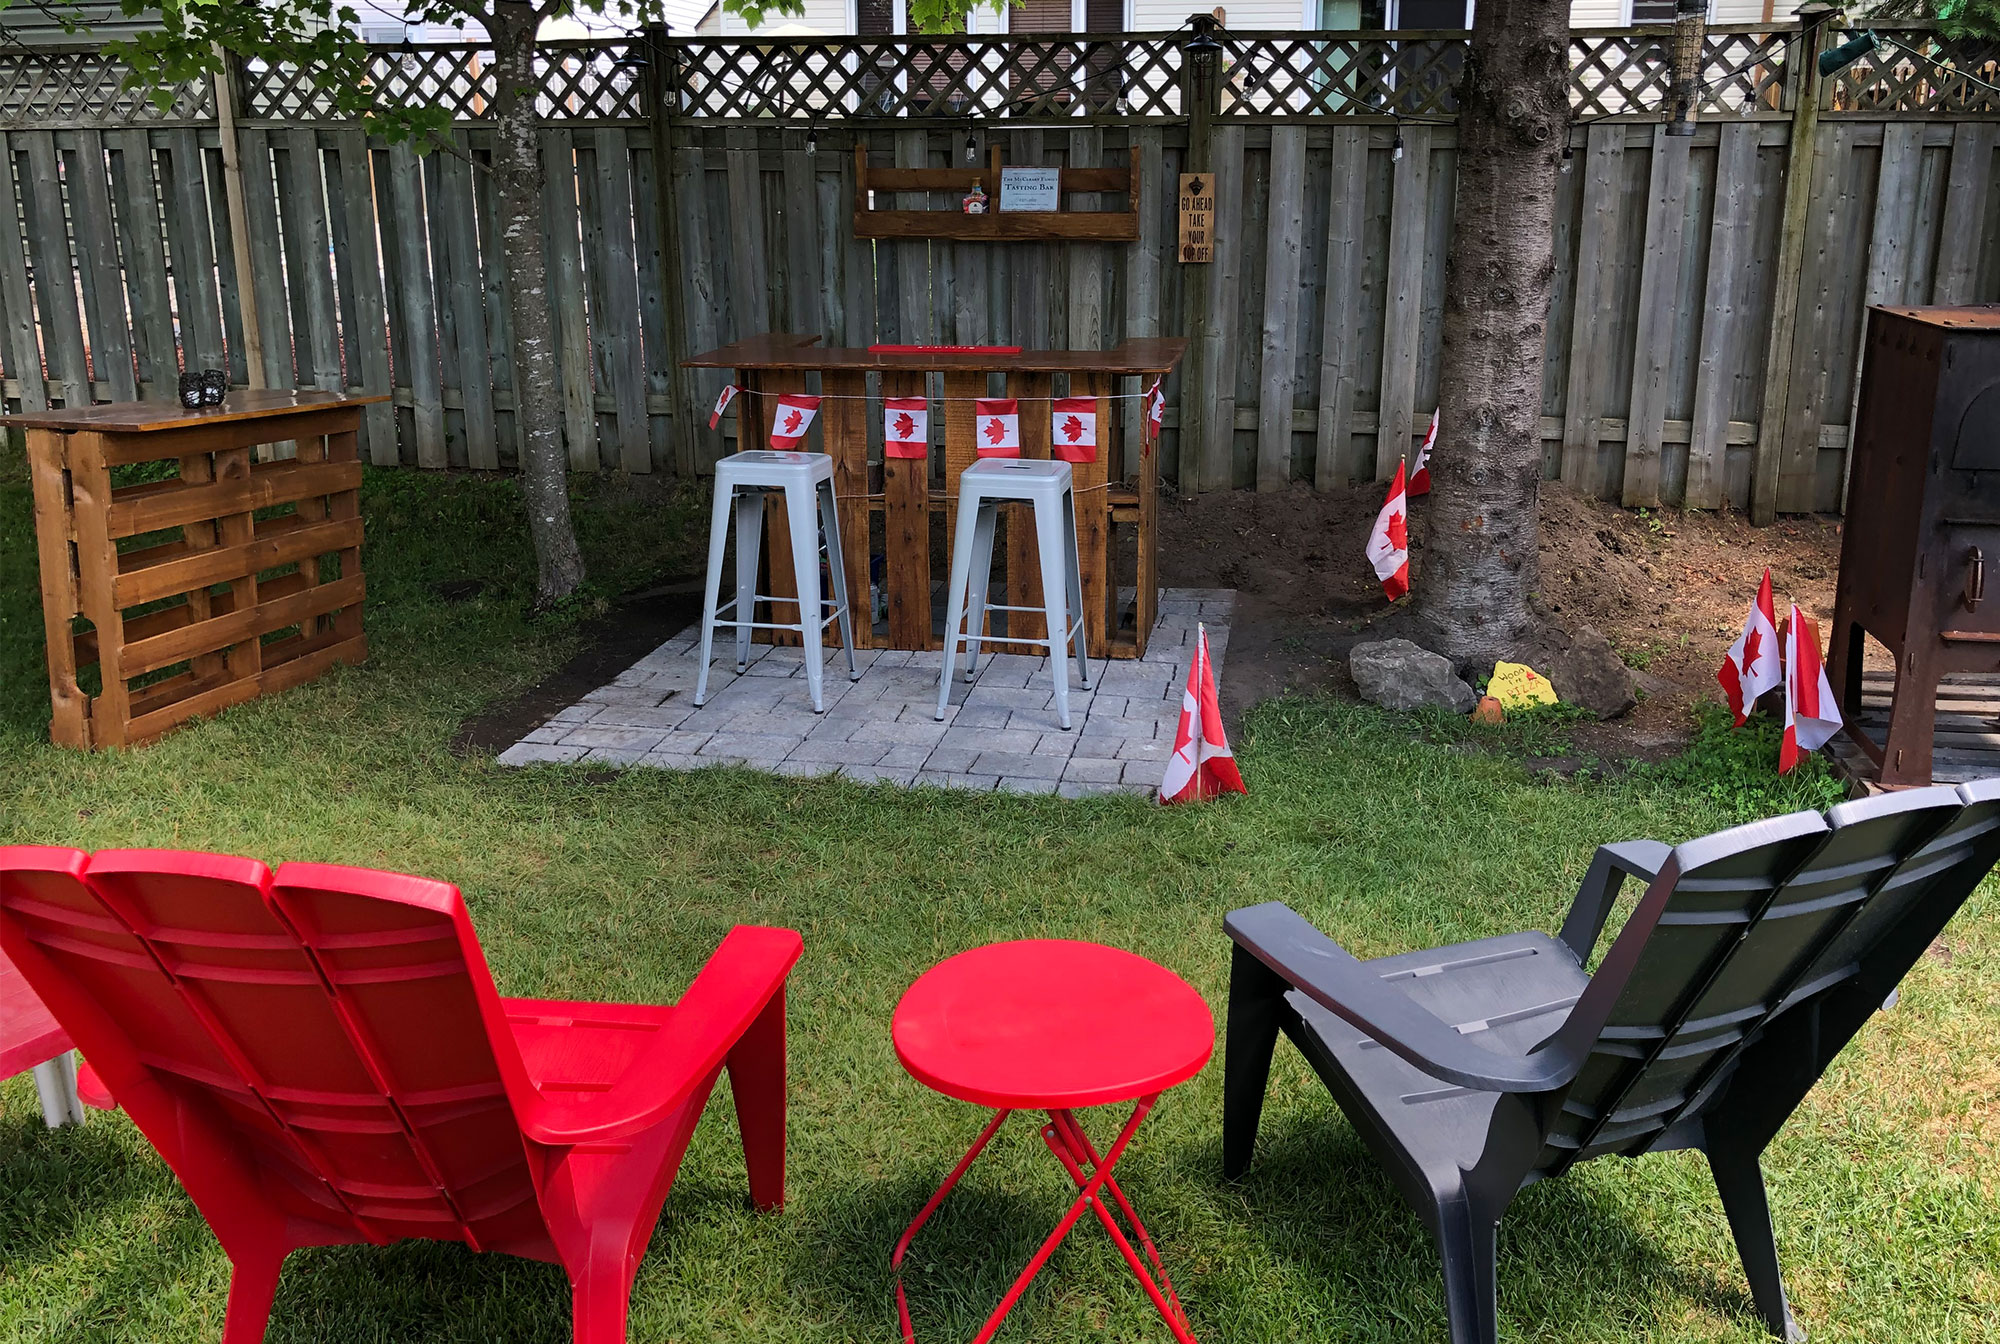 A view of the author's back yard showing some outdoor chairs, the bar, shelf and pub table.